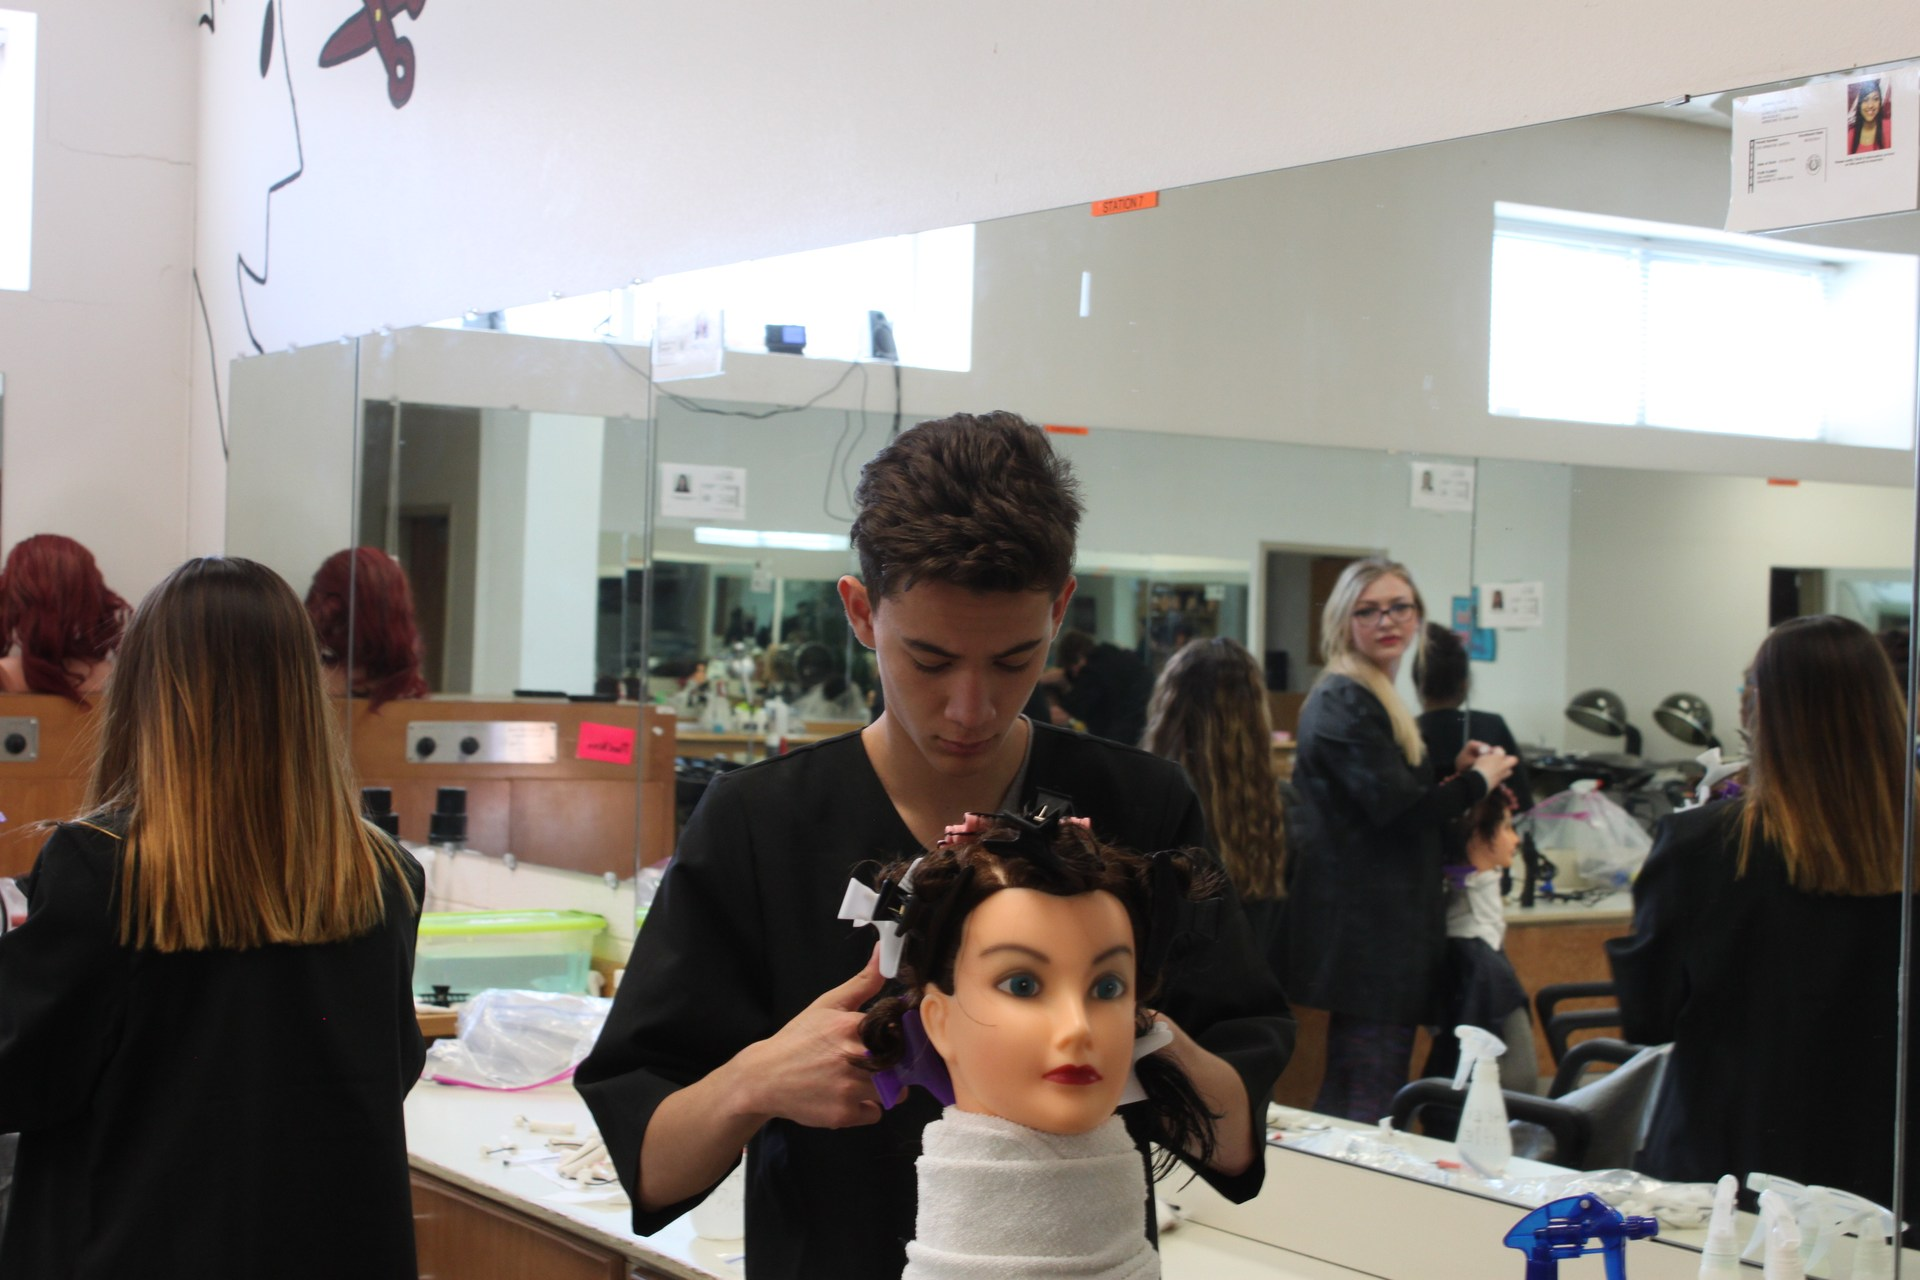 Student learning hairstyling